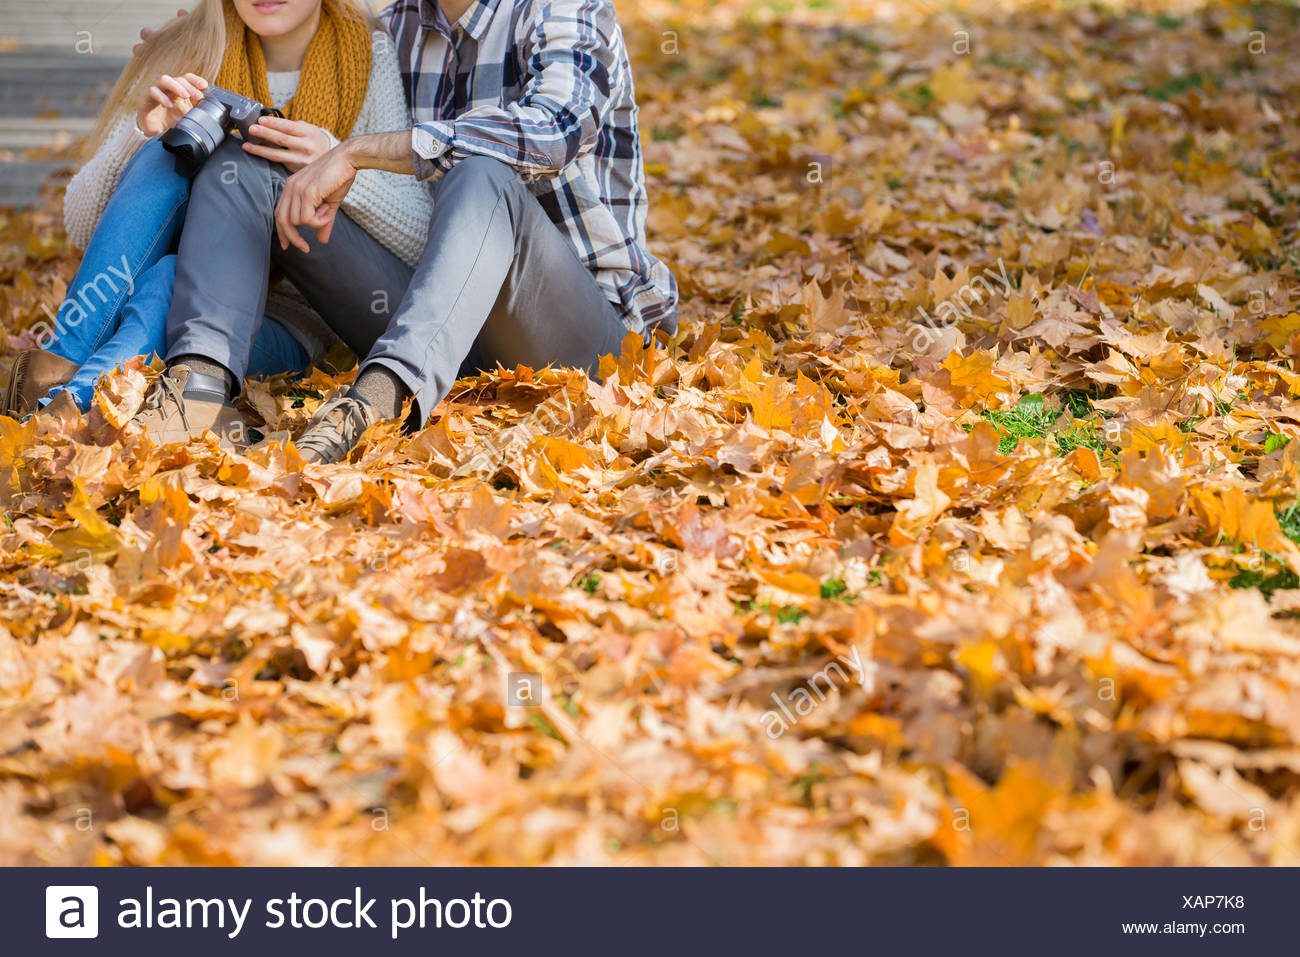 Low section of couple with camera sitting on autumn leaves in park - Stock Image